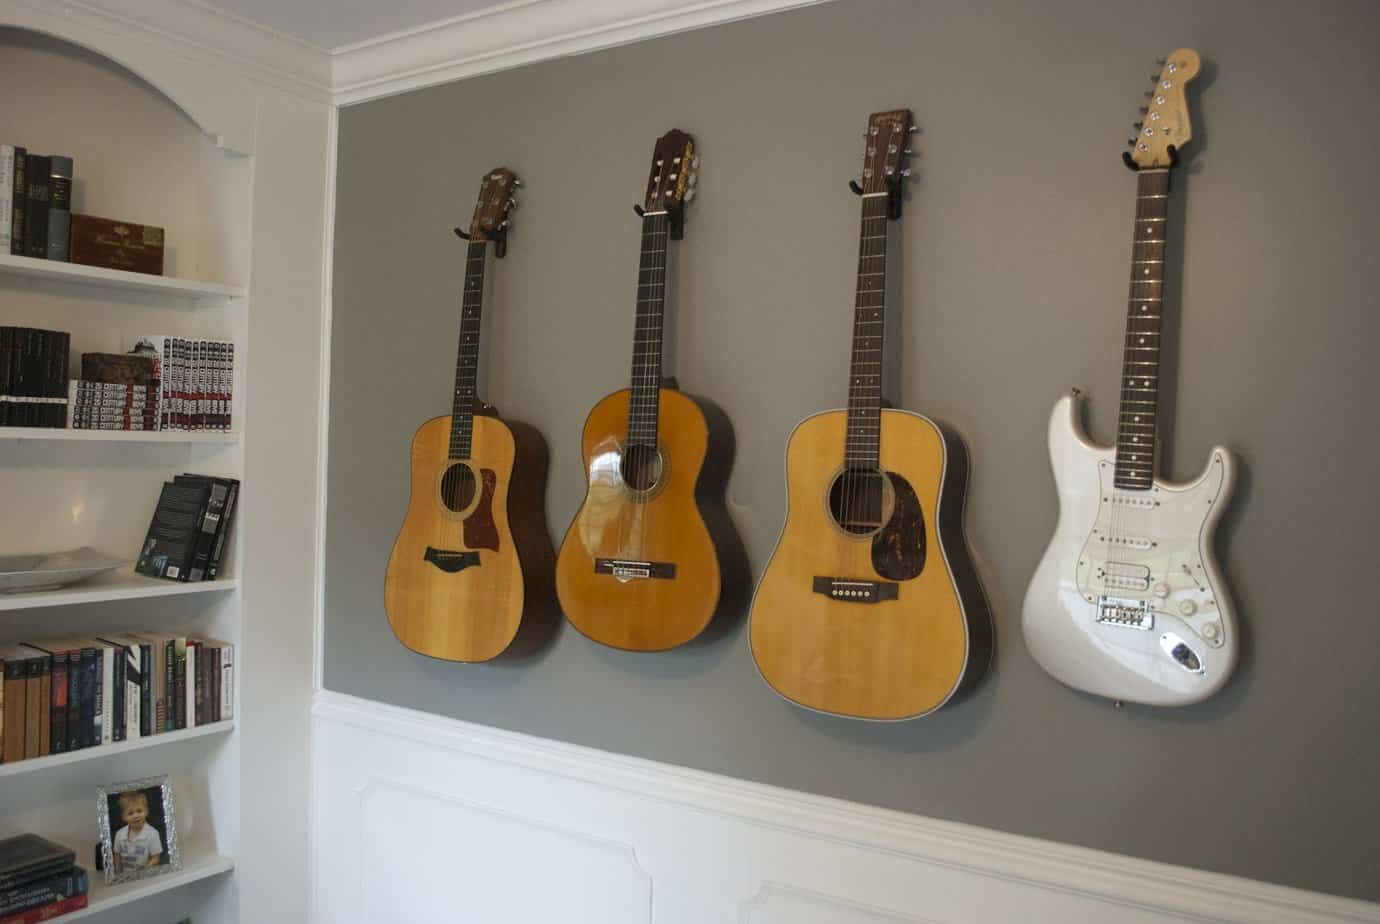 5 Best Guitar Wall Hangers That Actually Work 2019